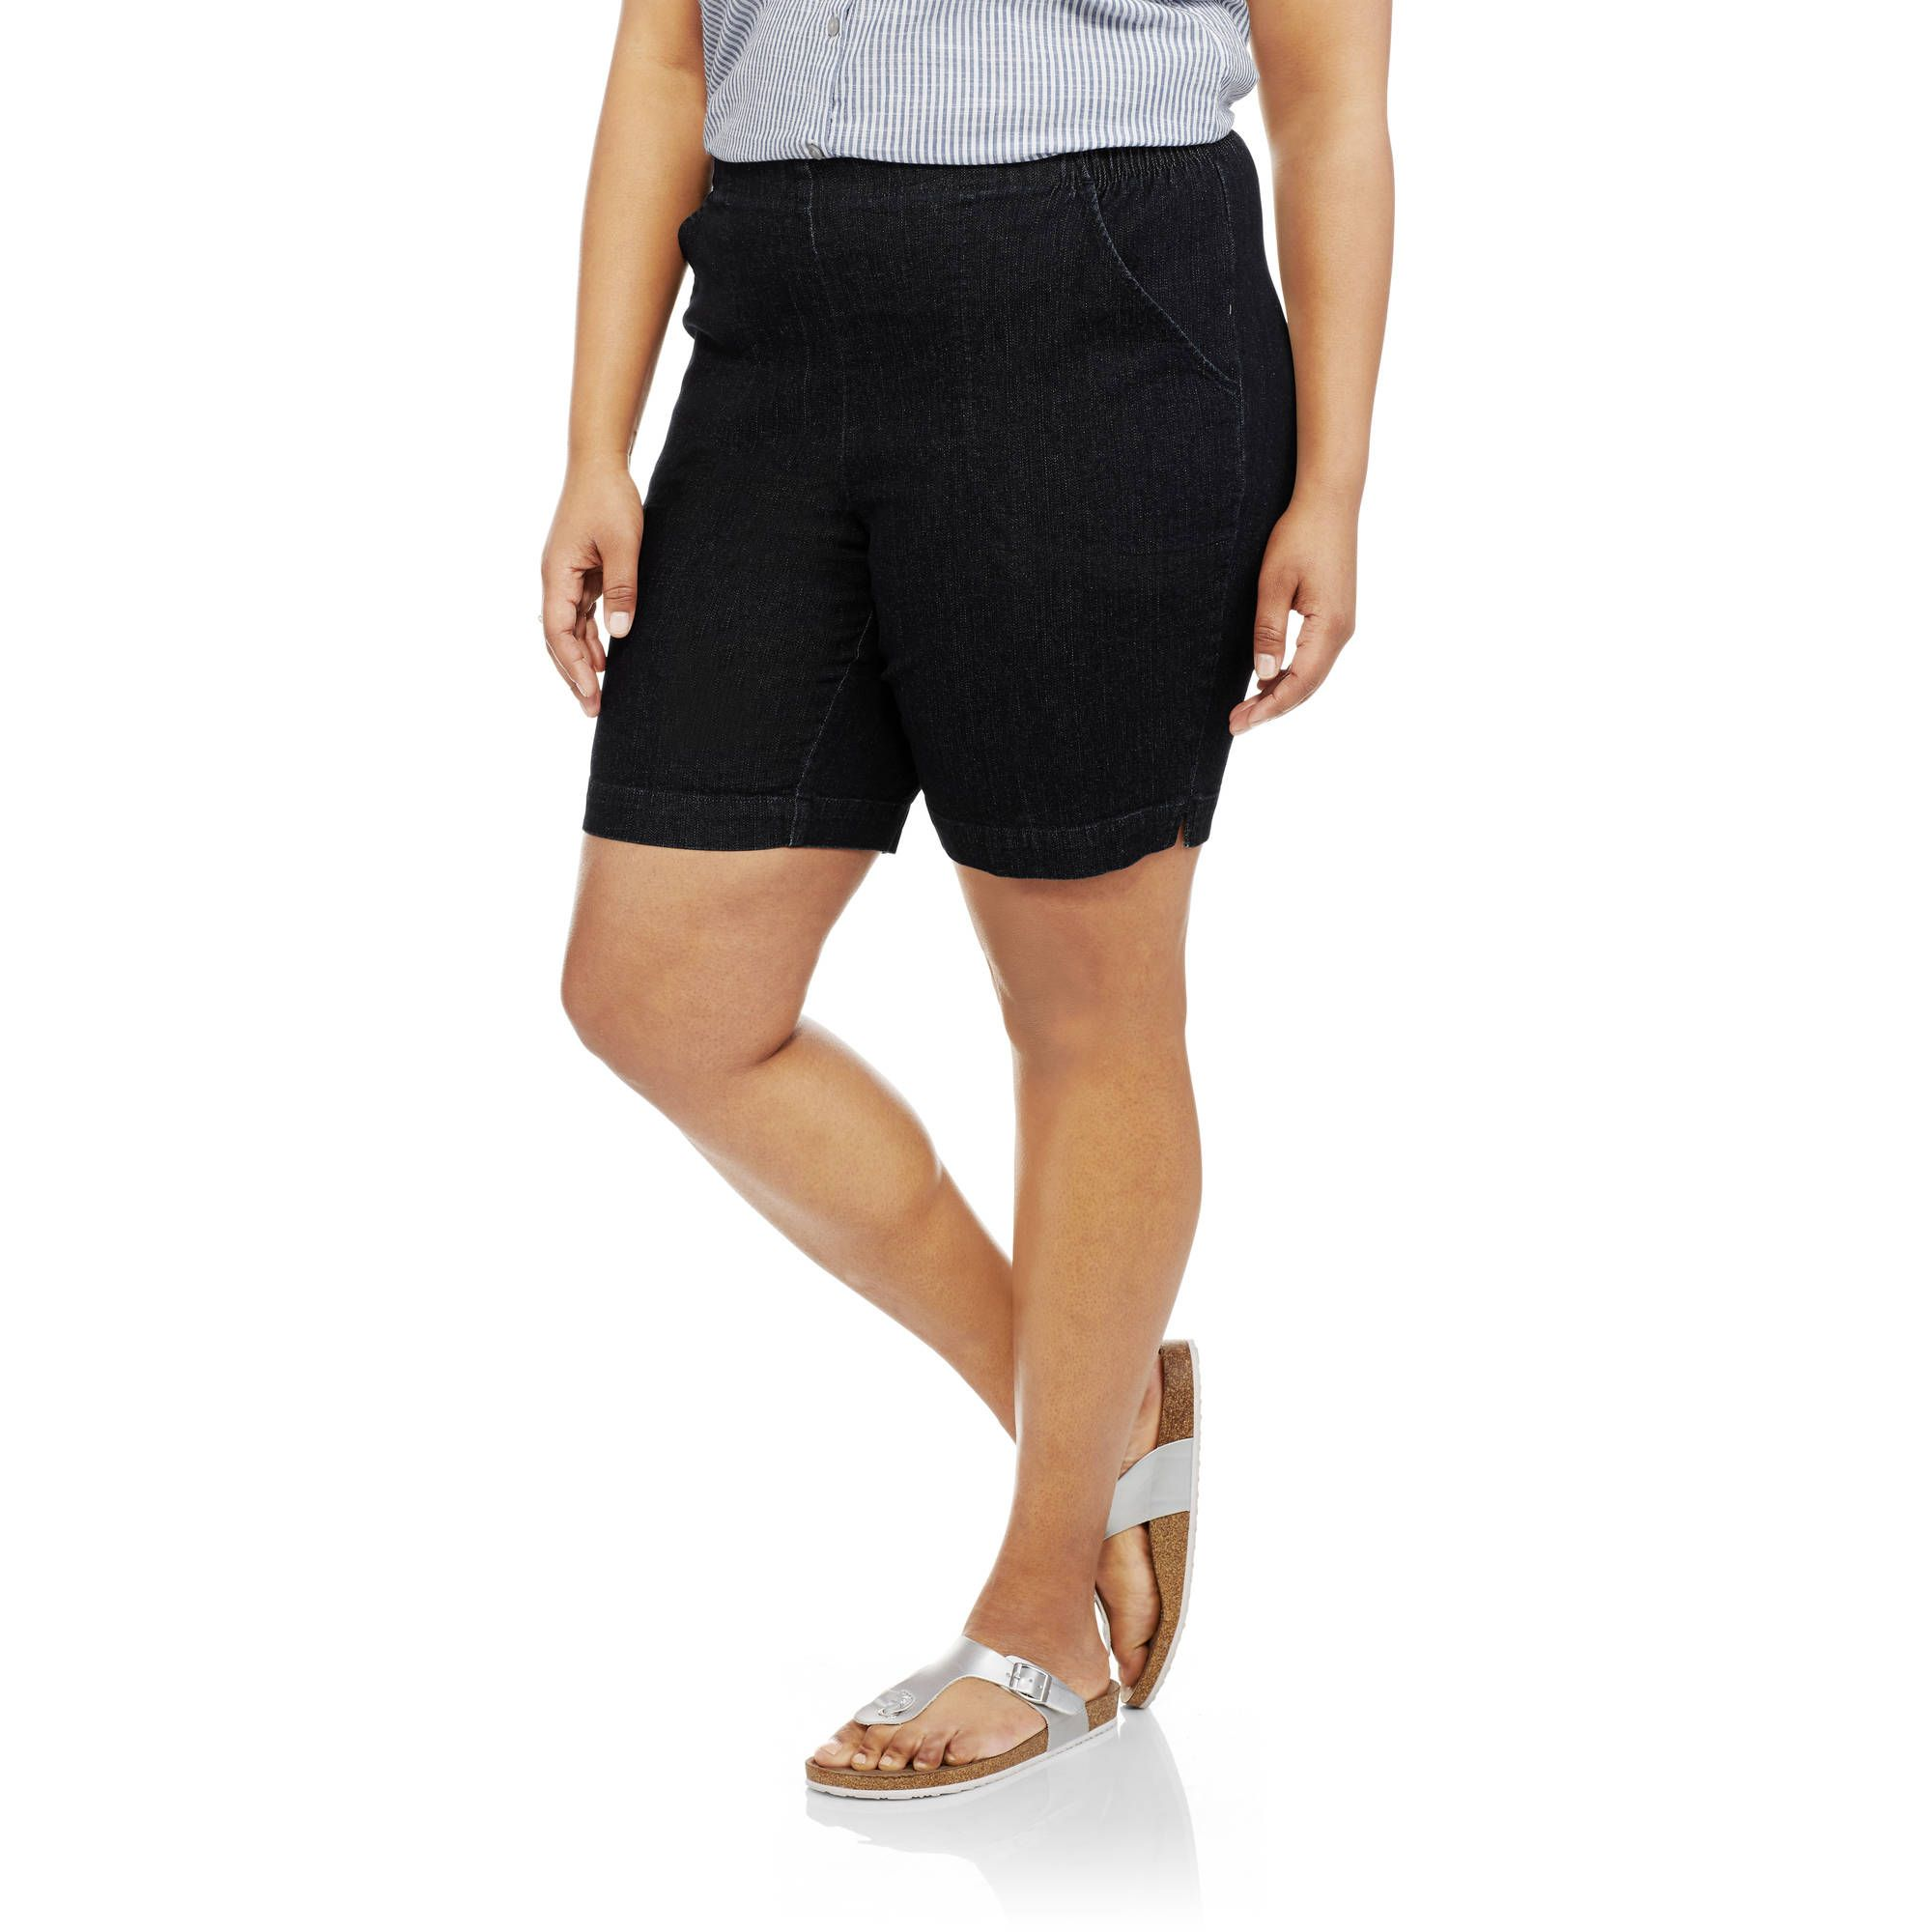 261eb9a2cc2c8 Just My Size Women's Plus-Size 2 pocket Pull-On Short - Walmart.com ...